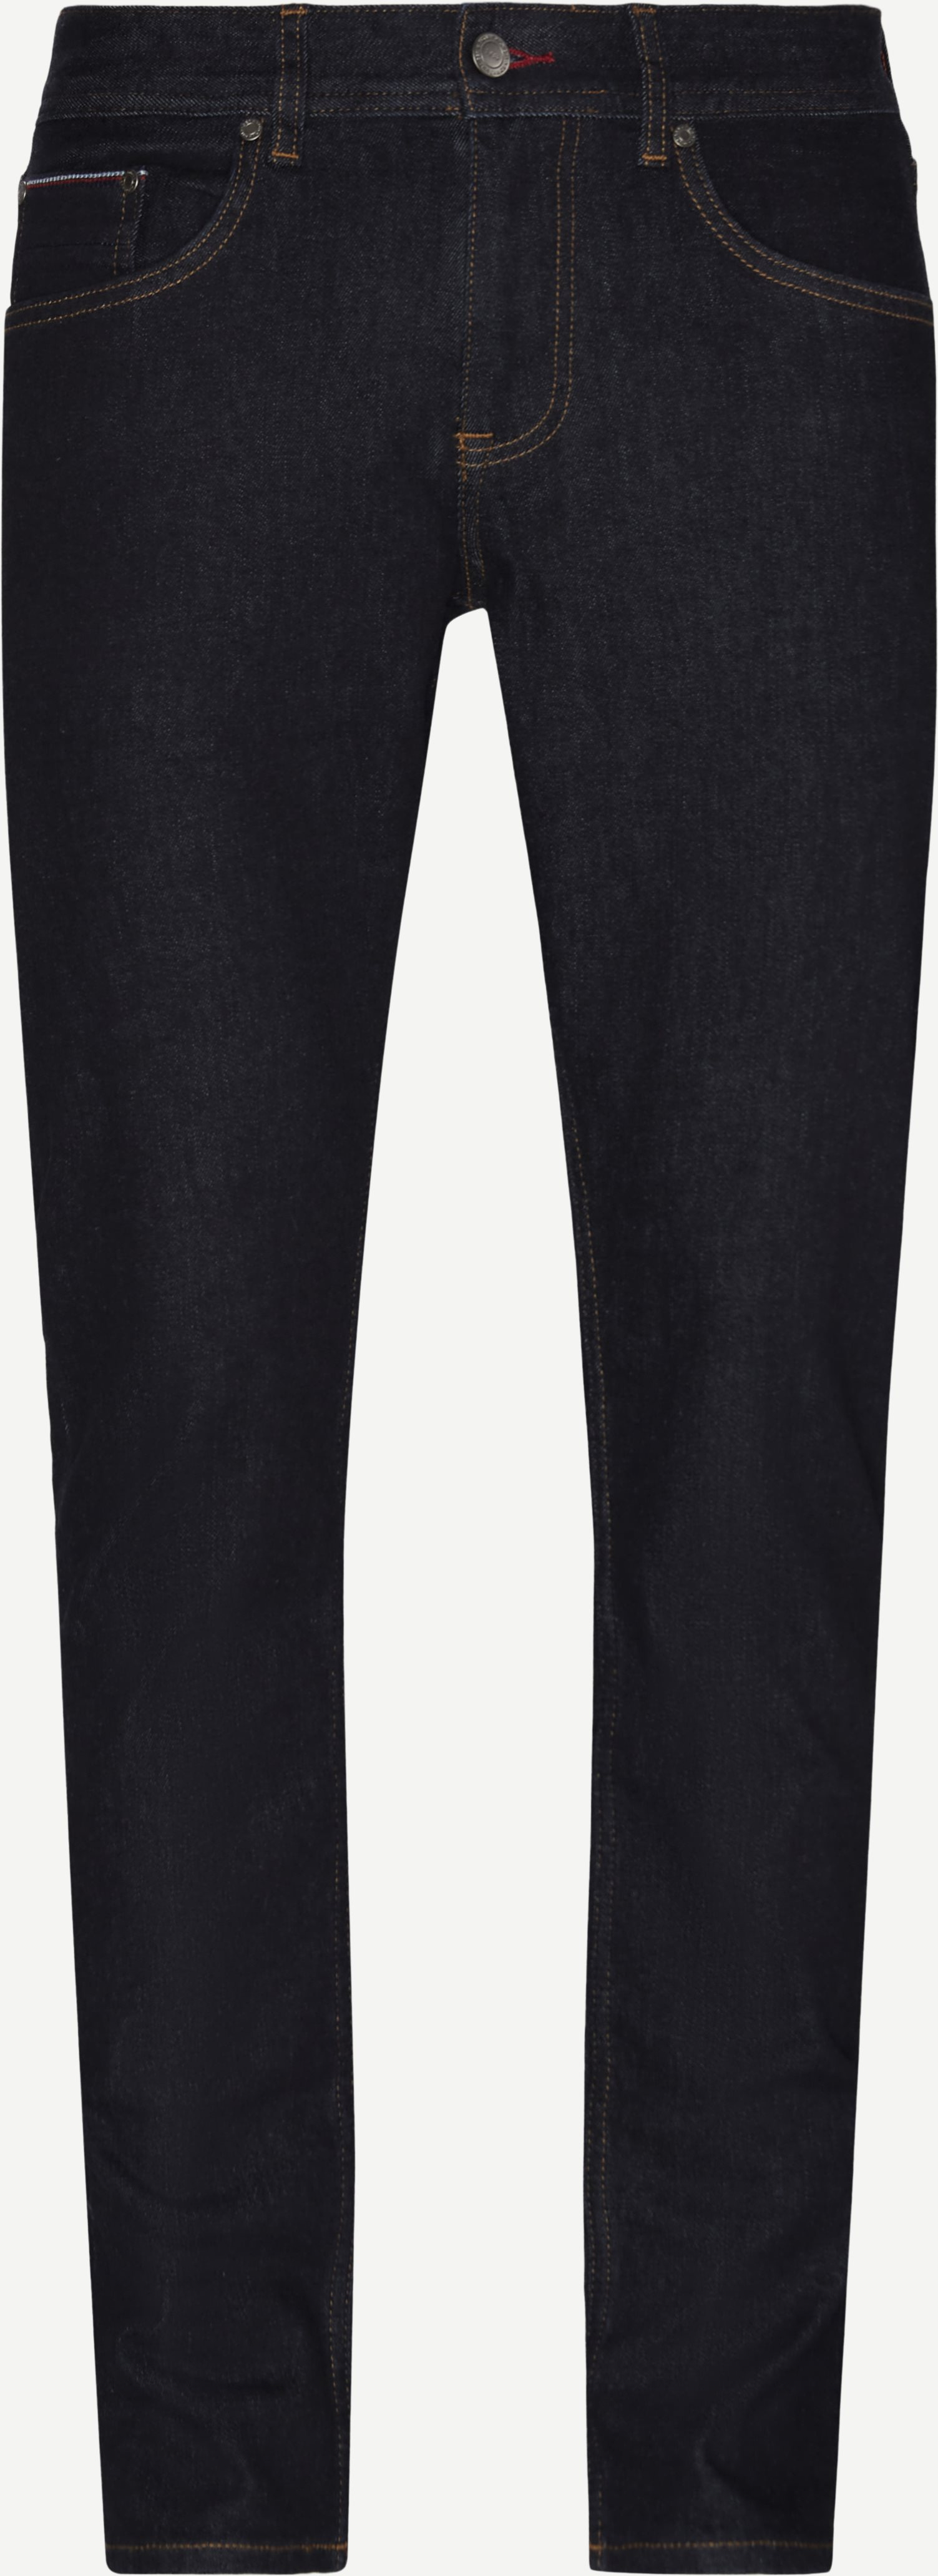 Bleecker Stretch Jeans - Jeans - Slim - Denim